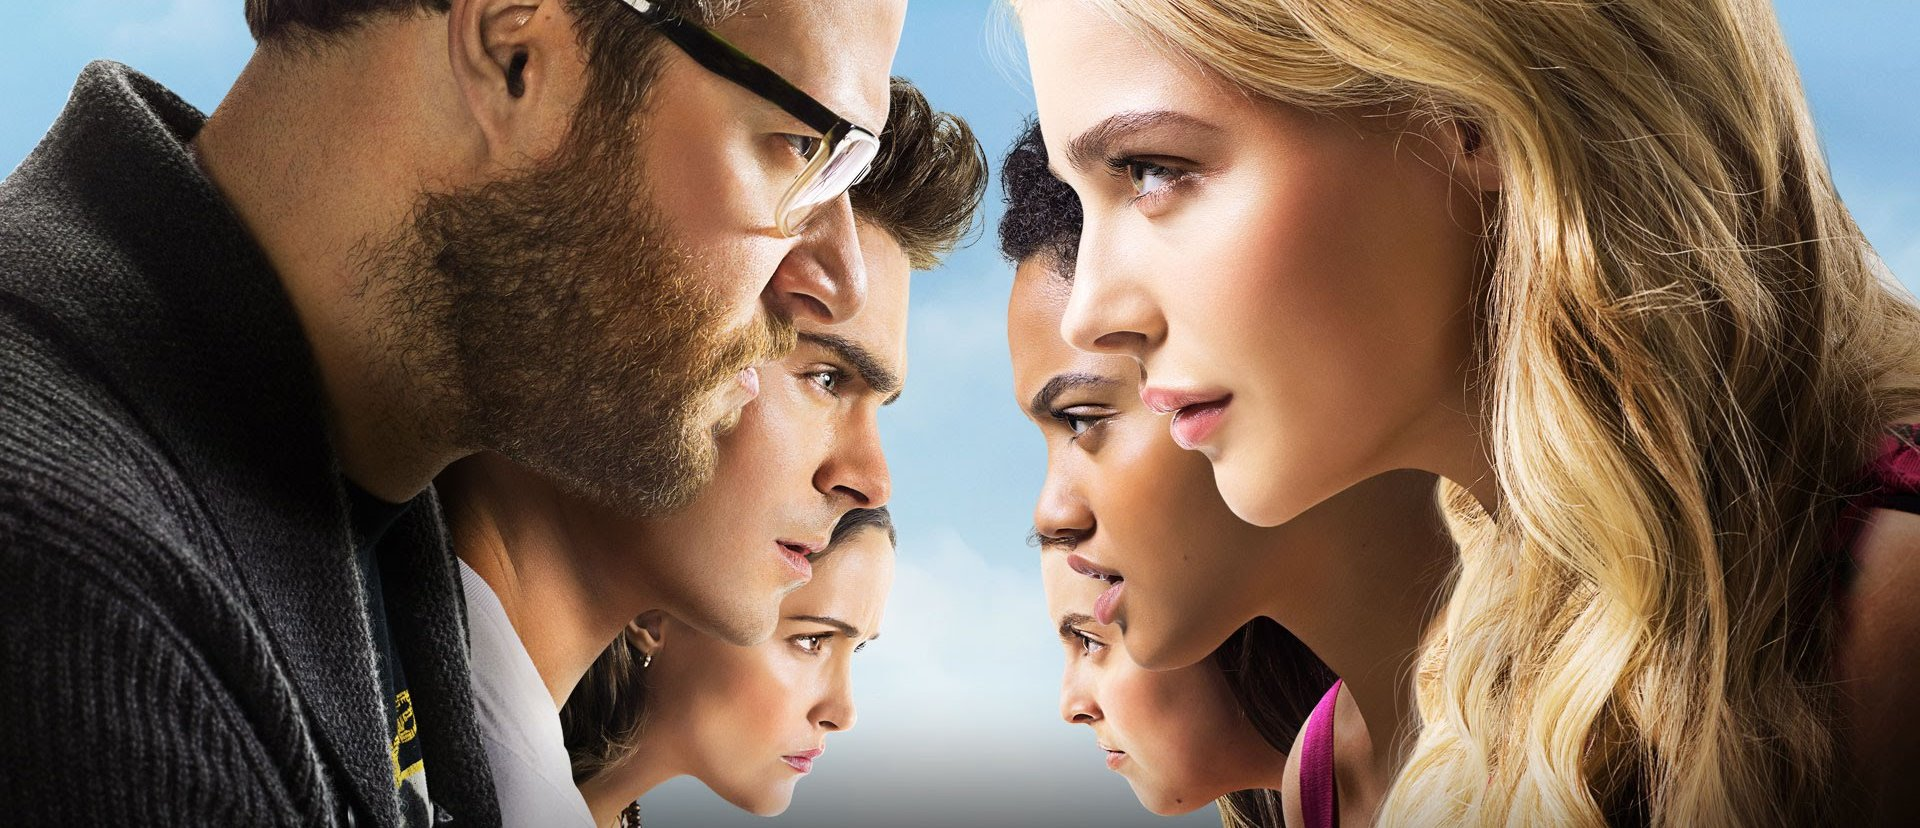 Film: Neighbors 2: Sorority Rising feature image